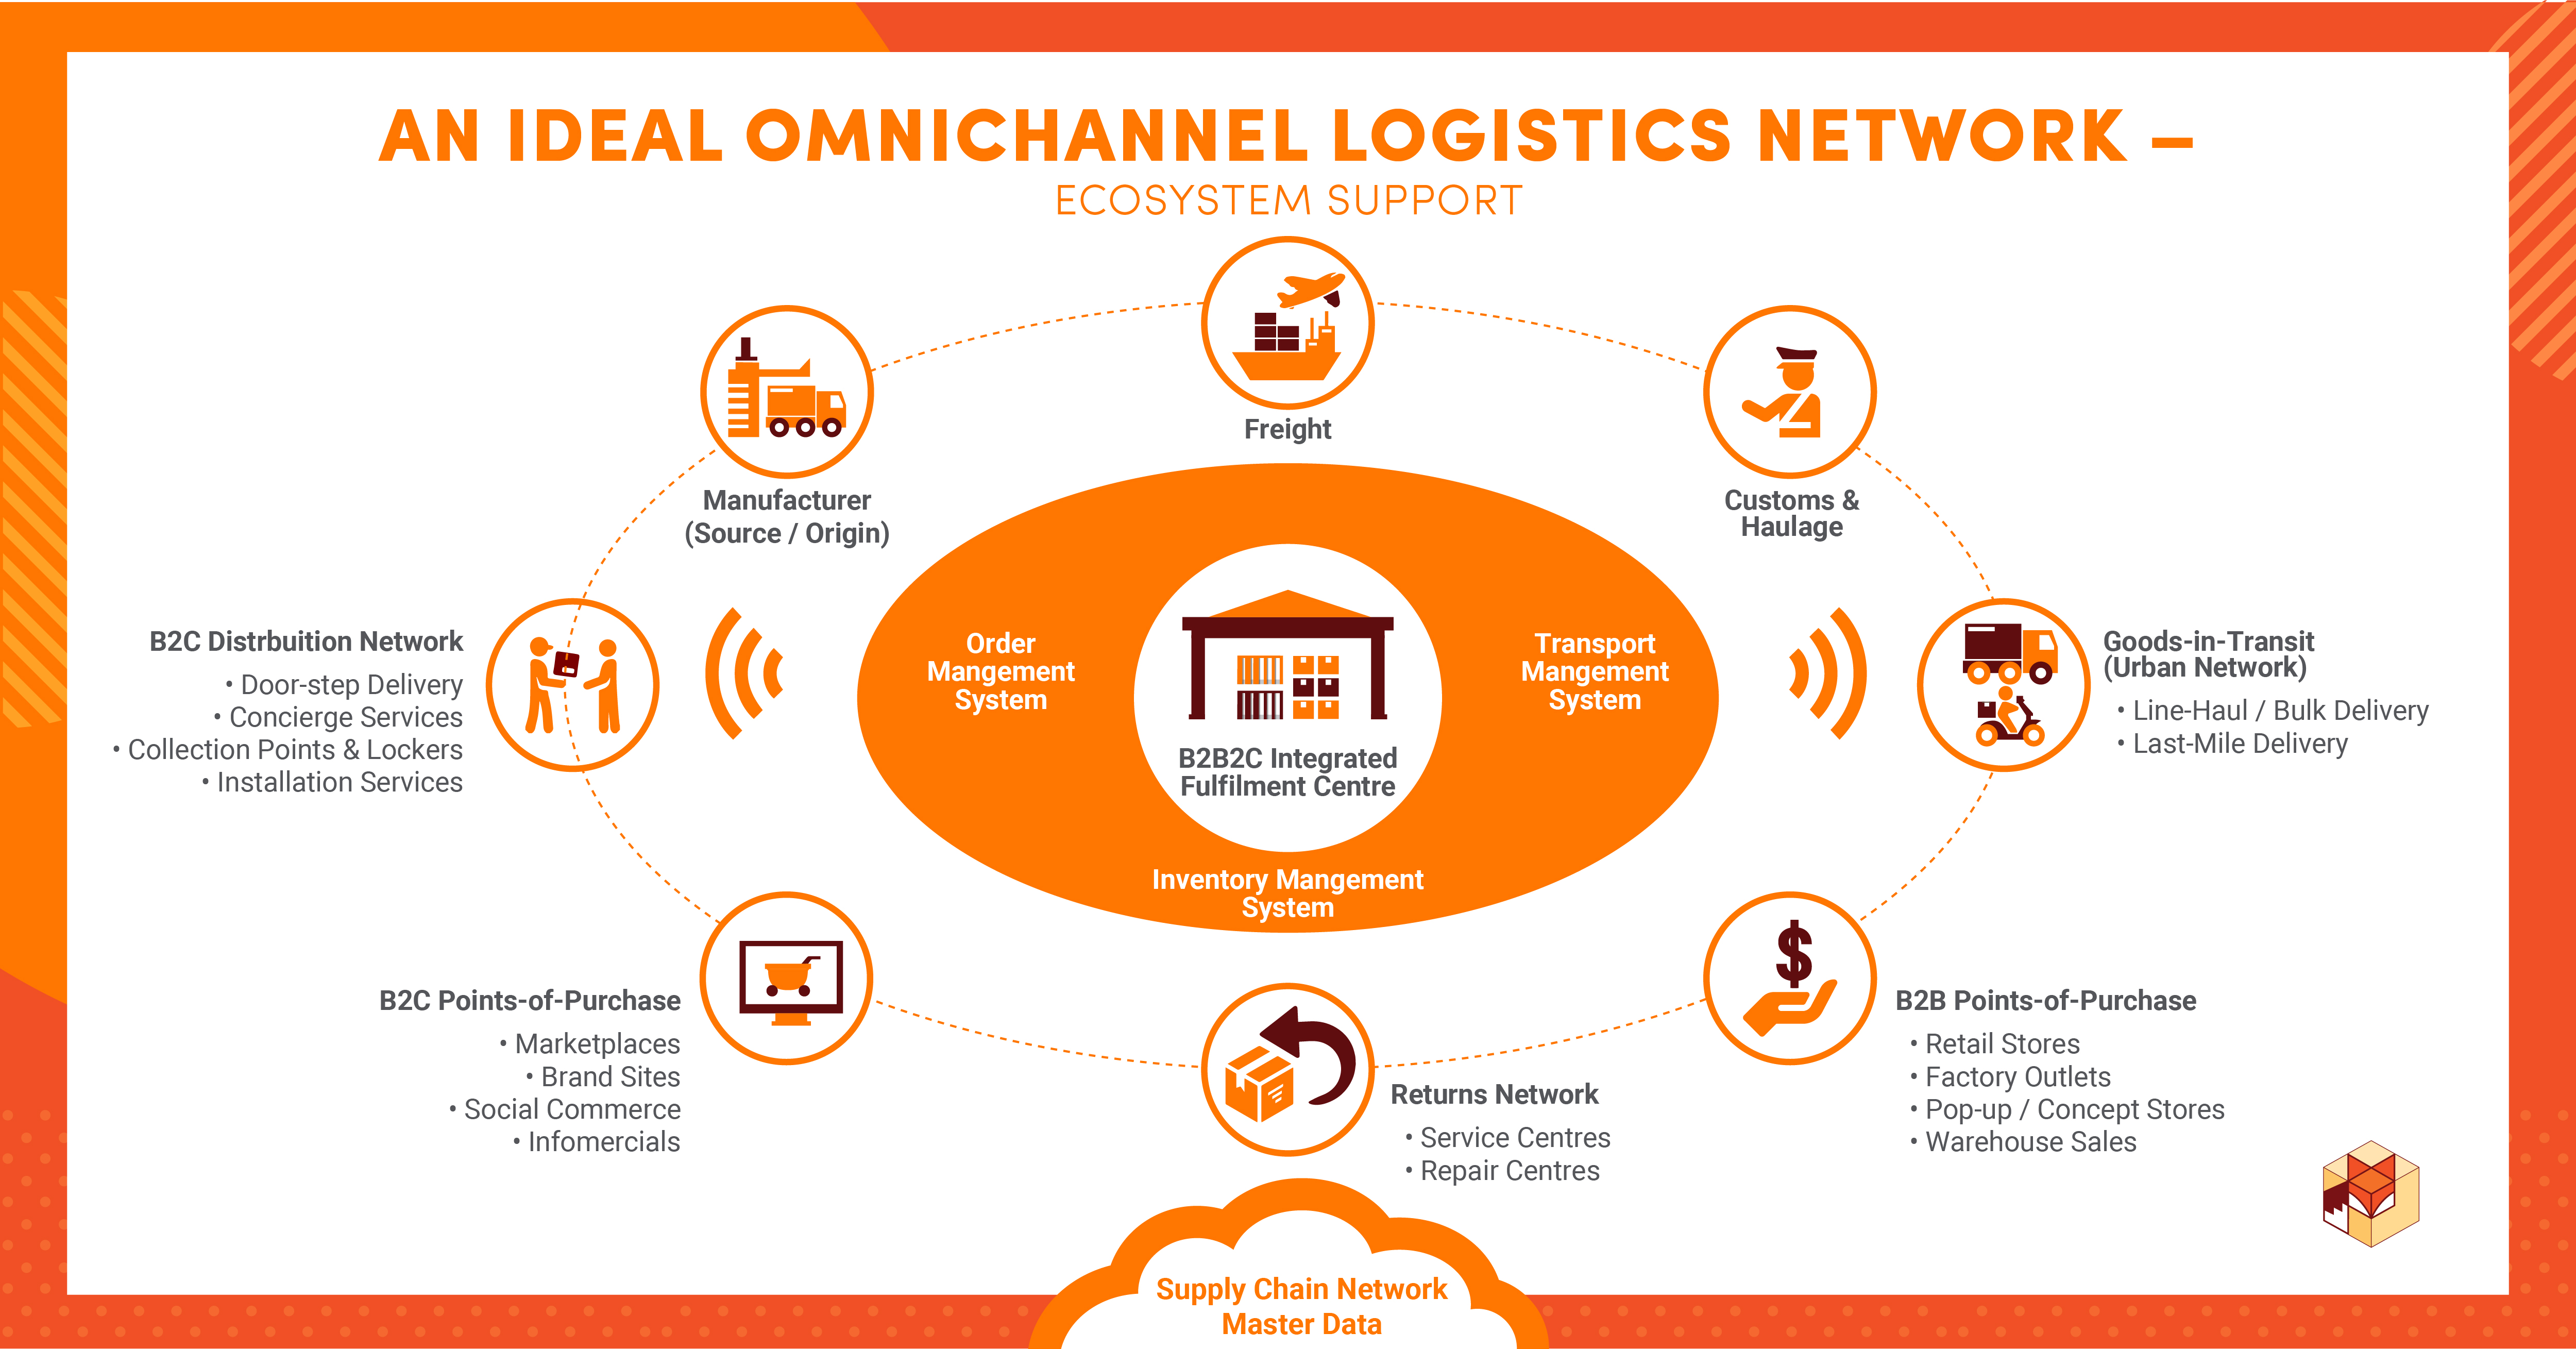 Omnichannel Logistics Ecosystem Supported by SCM Master Data